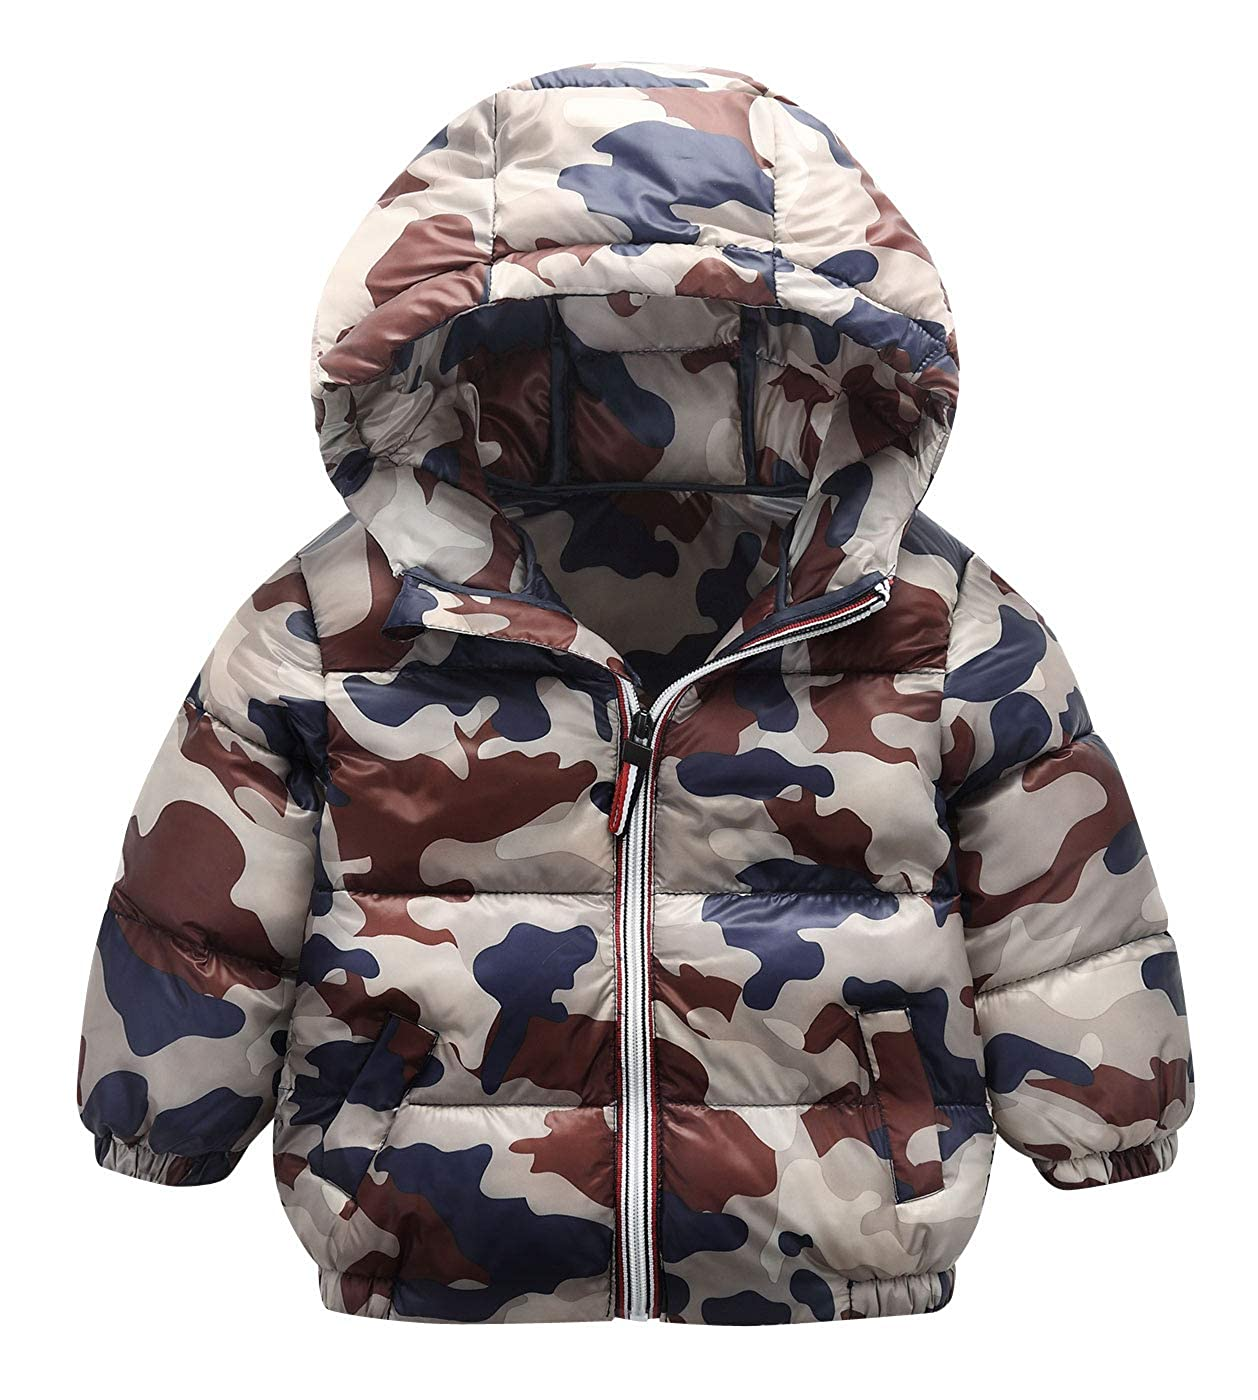 AIEOE Baby Boys Down Coats Lightweight Winter Puffer Hooded Jackets 1-5 Years